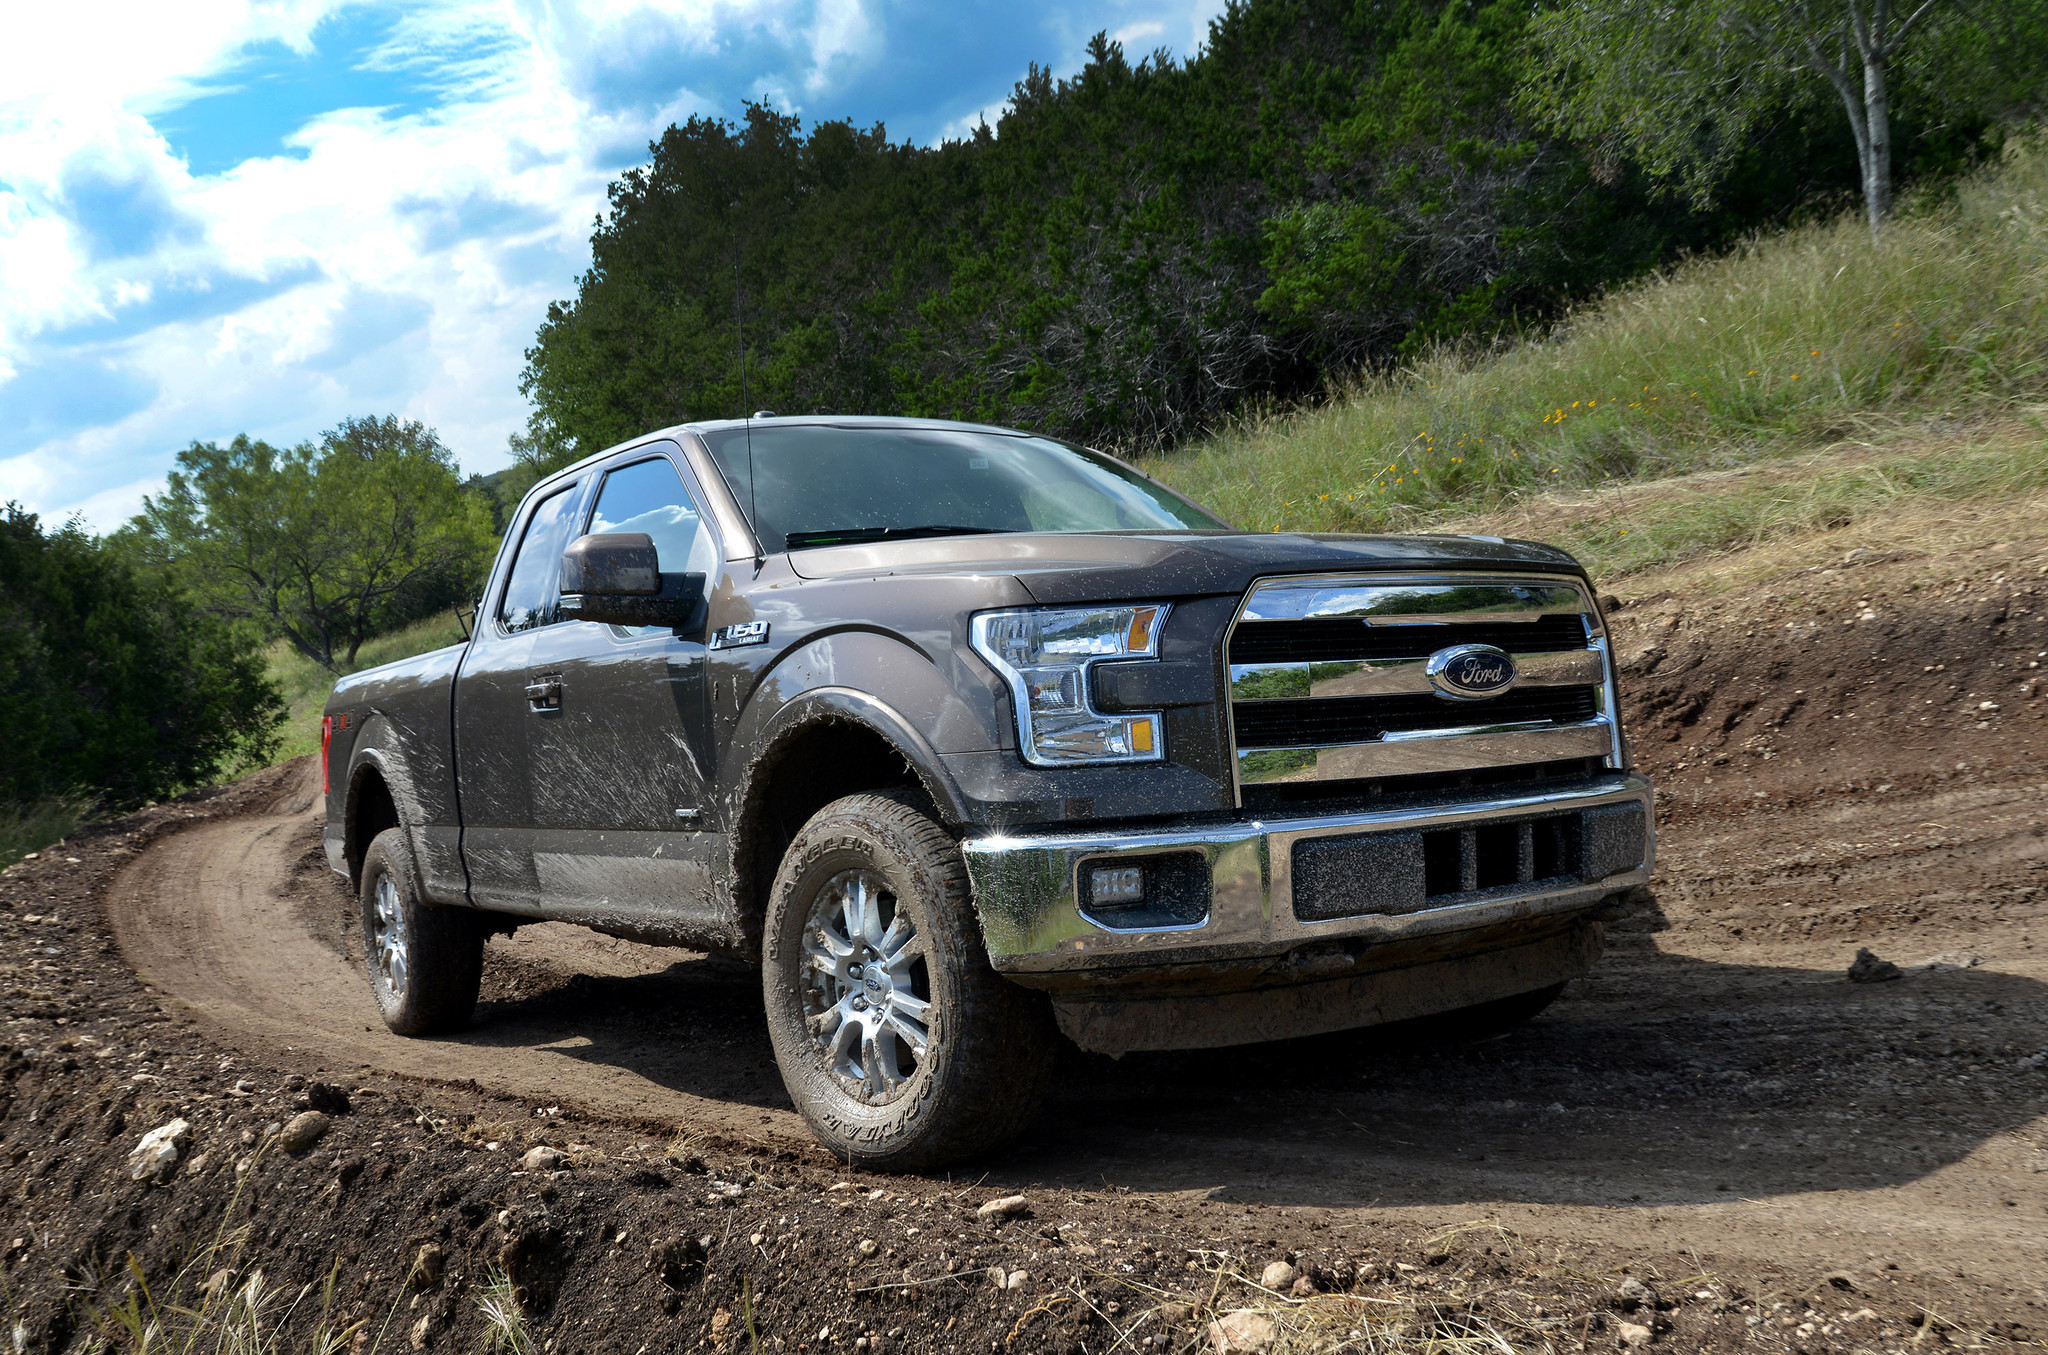 Ford profit falls in third quarter on truck costs